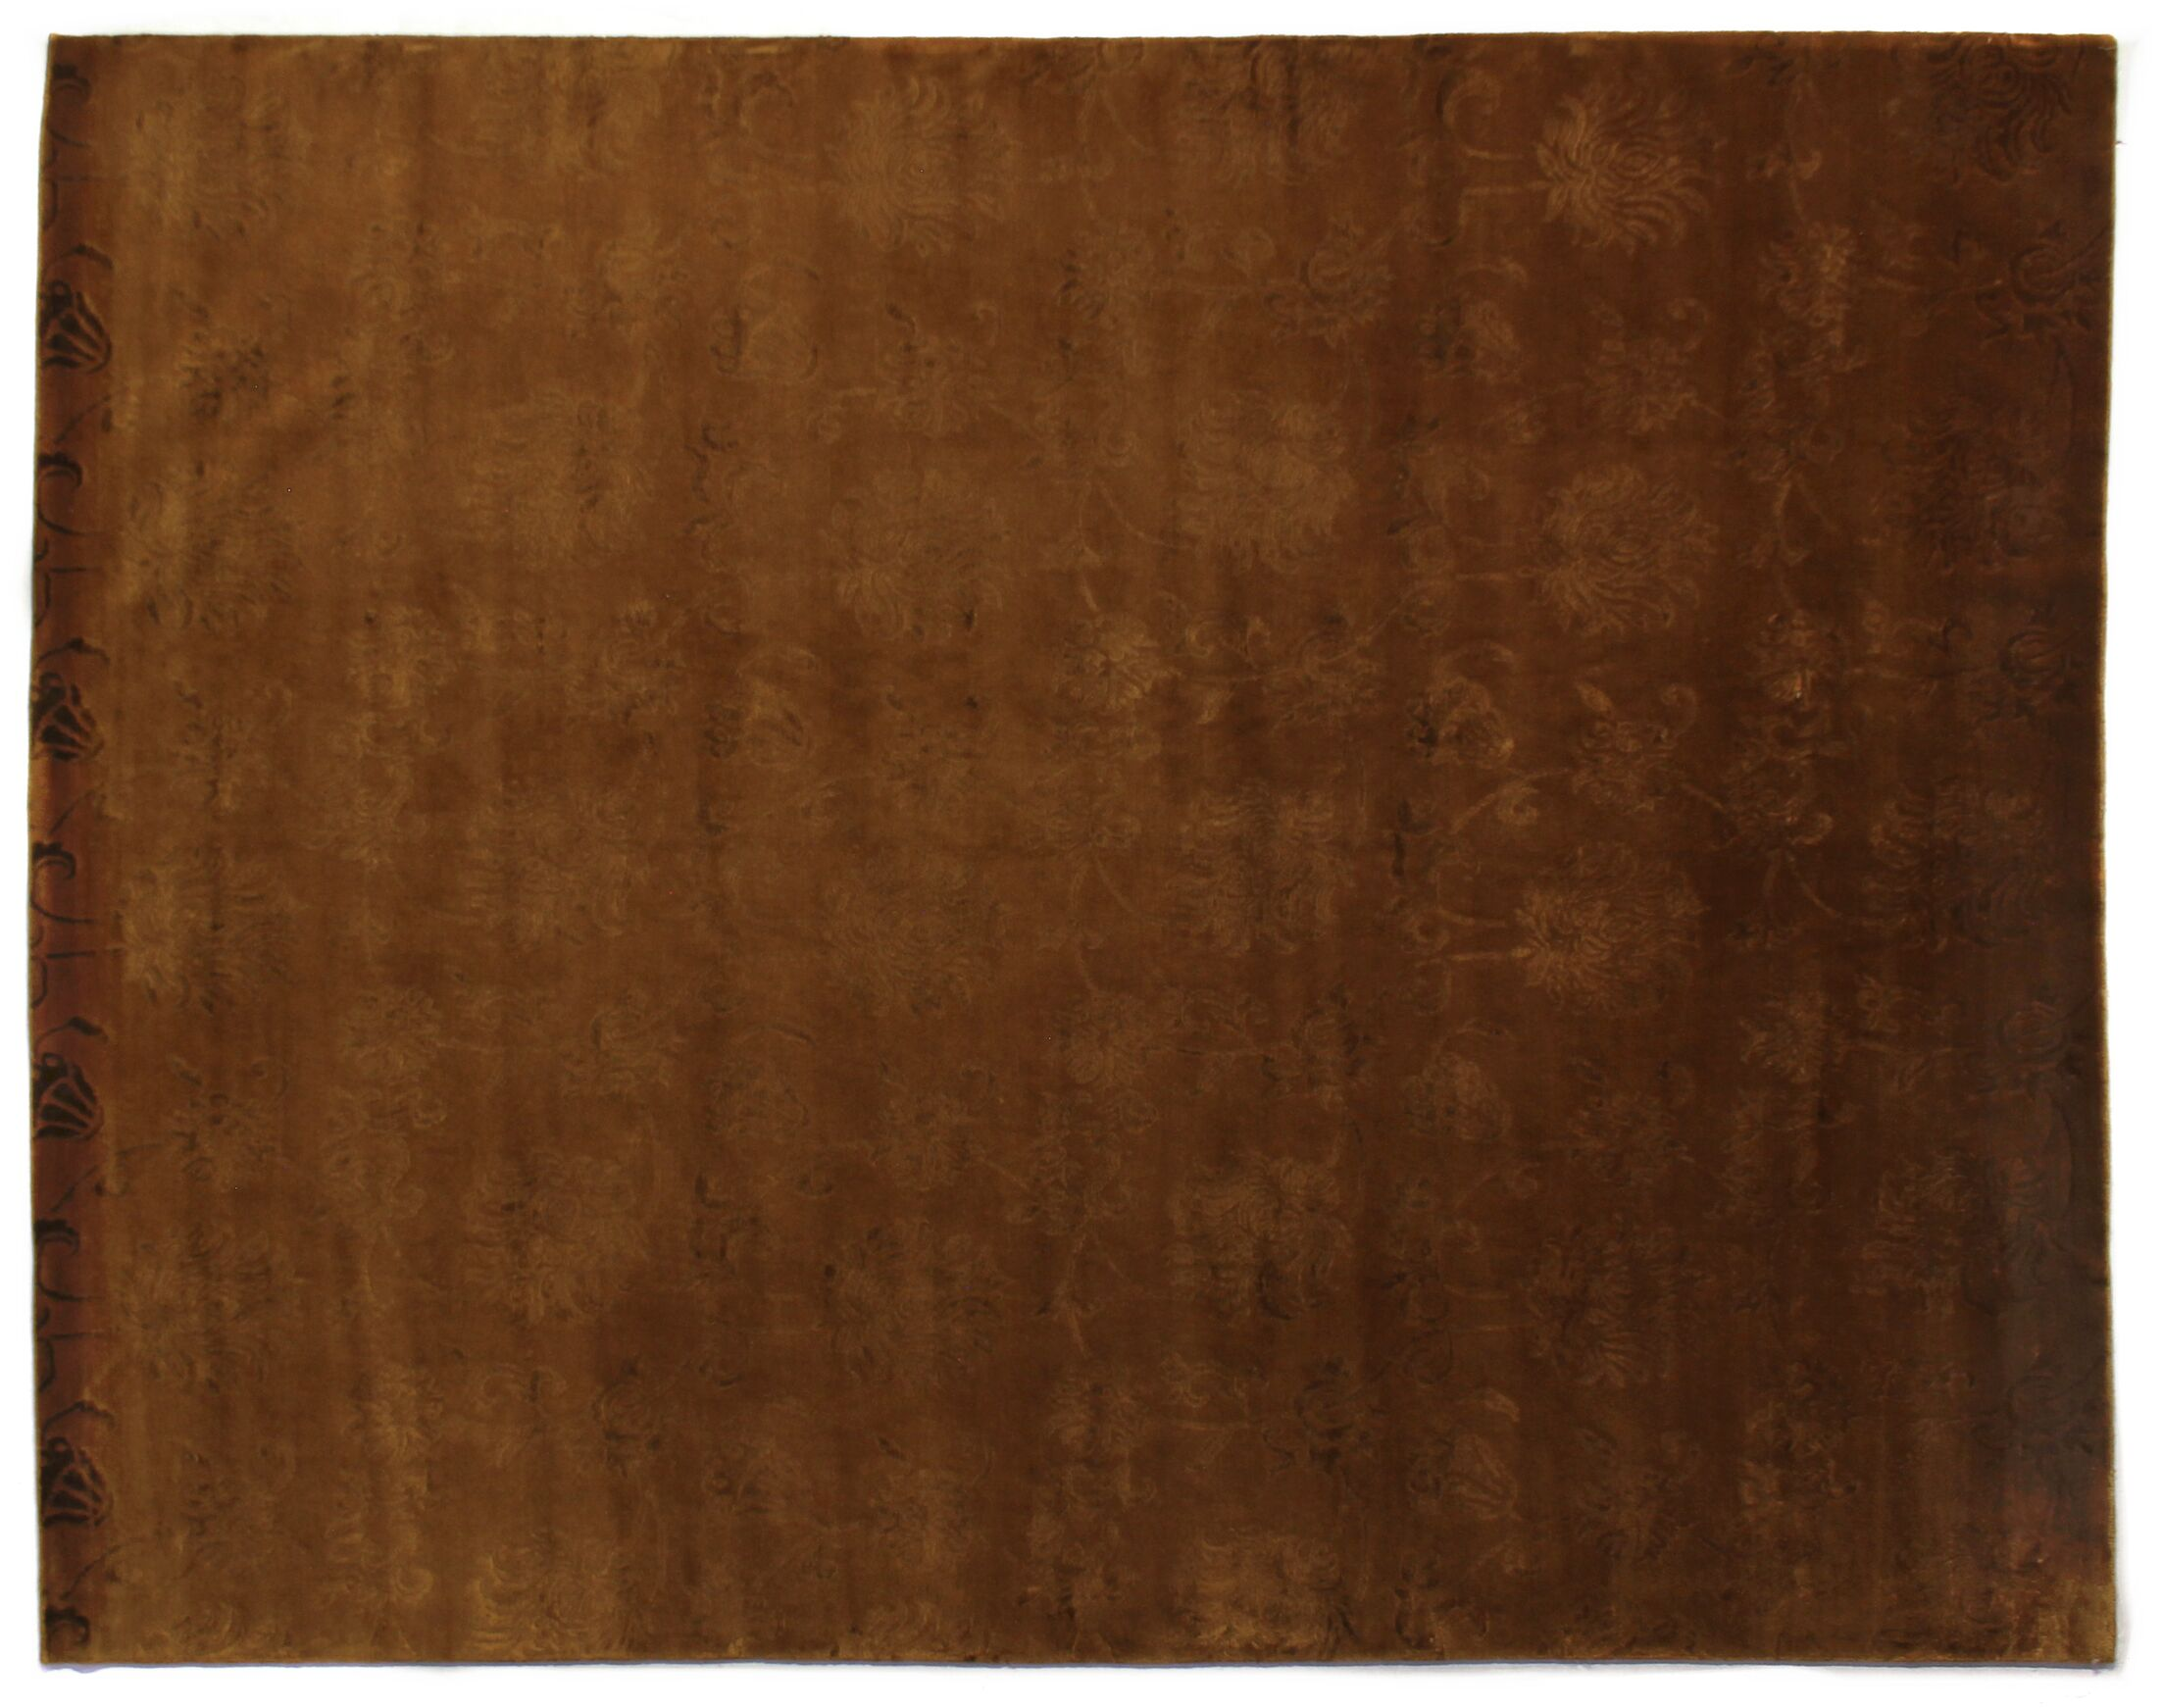 Super Tibetan Hand-Knotted Terracotta Area Rug Rug Size: Rectangle 9' x 12'